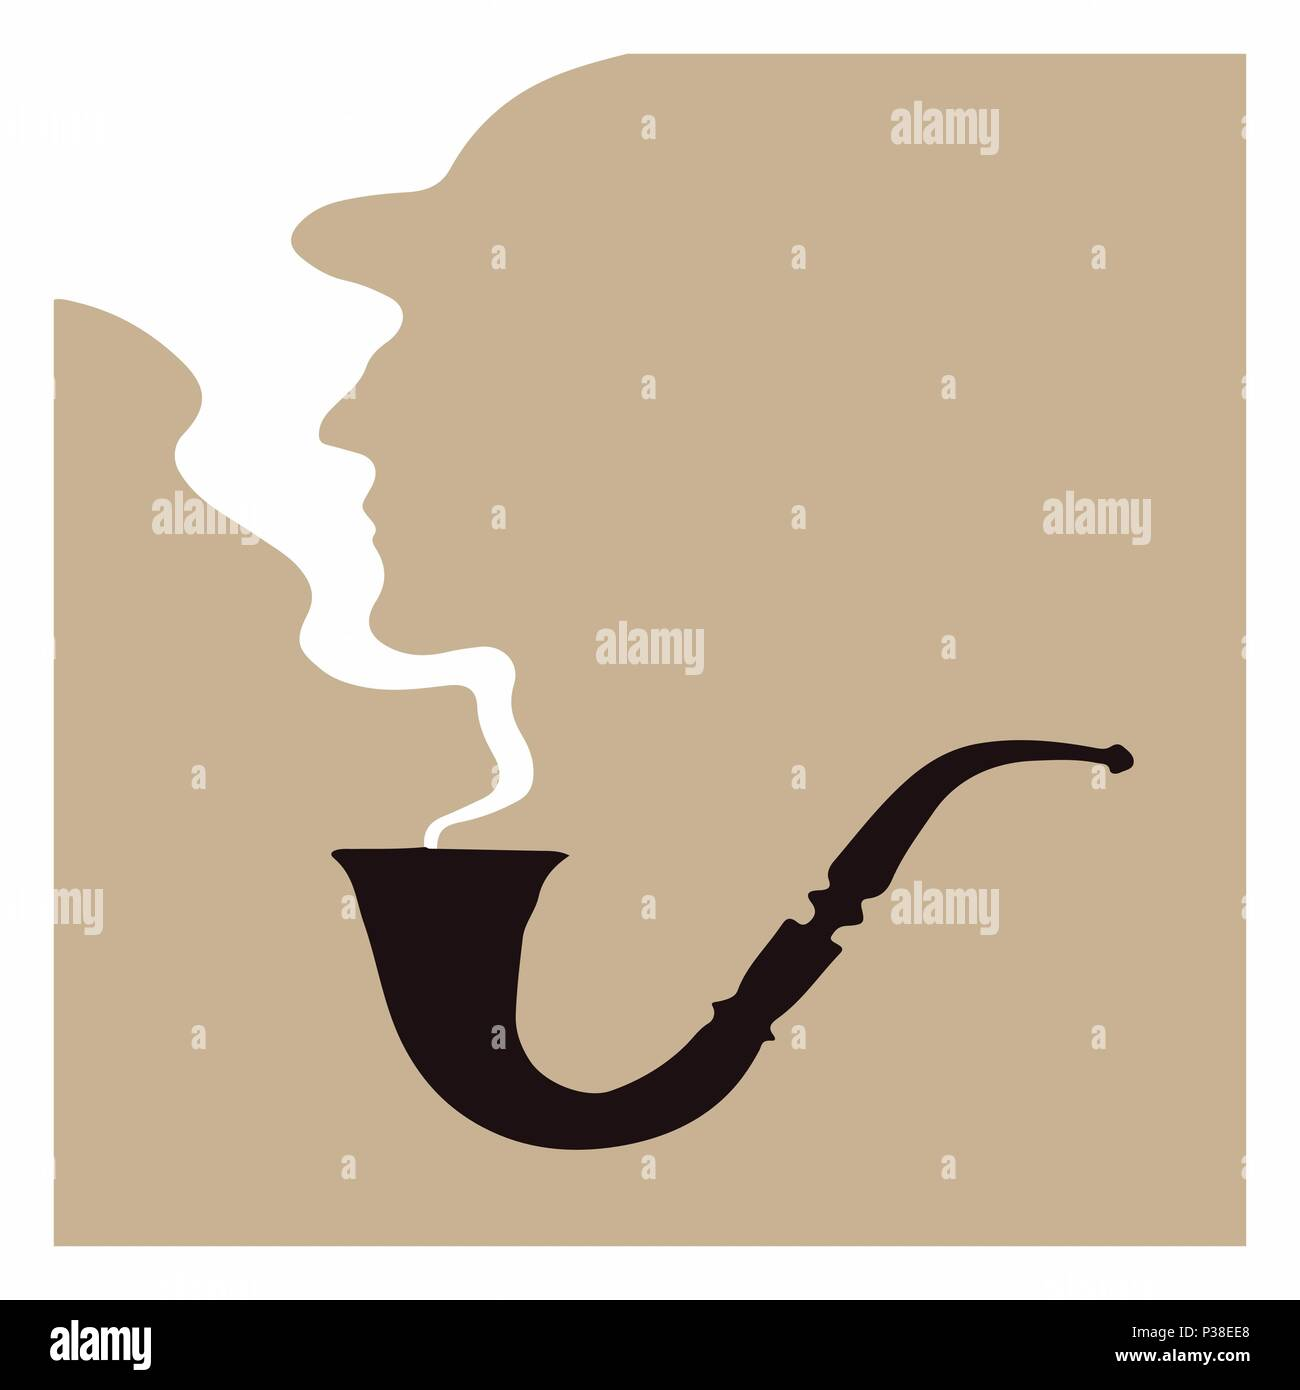 Silhouette of a man from the smoke from a pipe. Vector illustration. Character Sherlock Holmes. - Stock Image